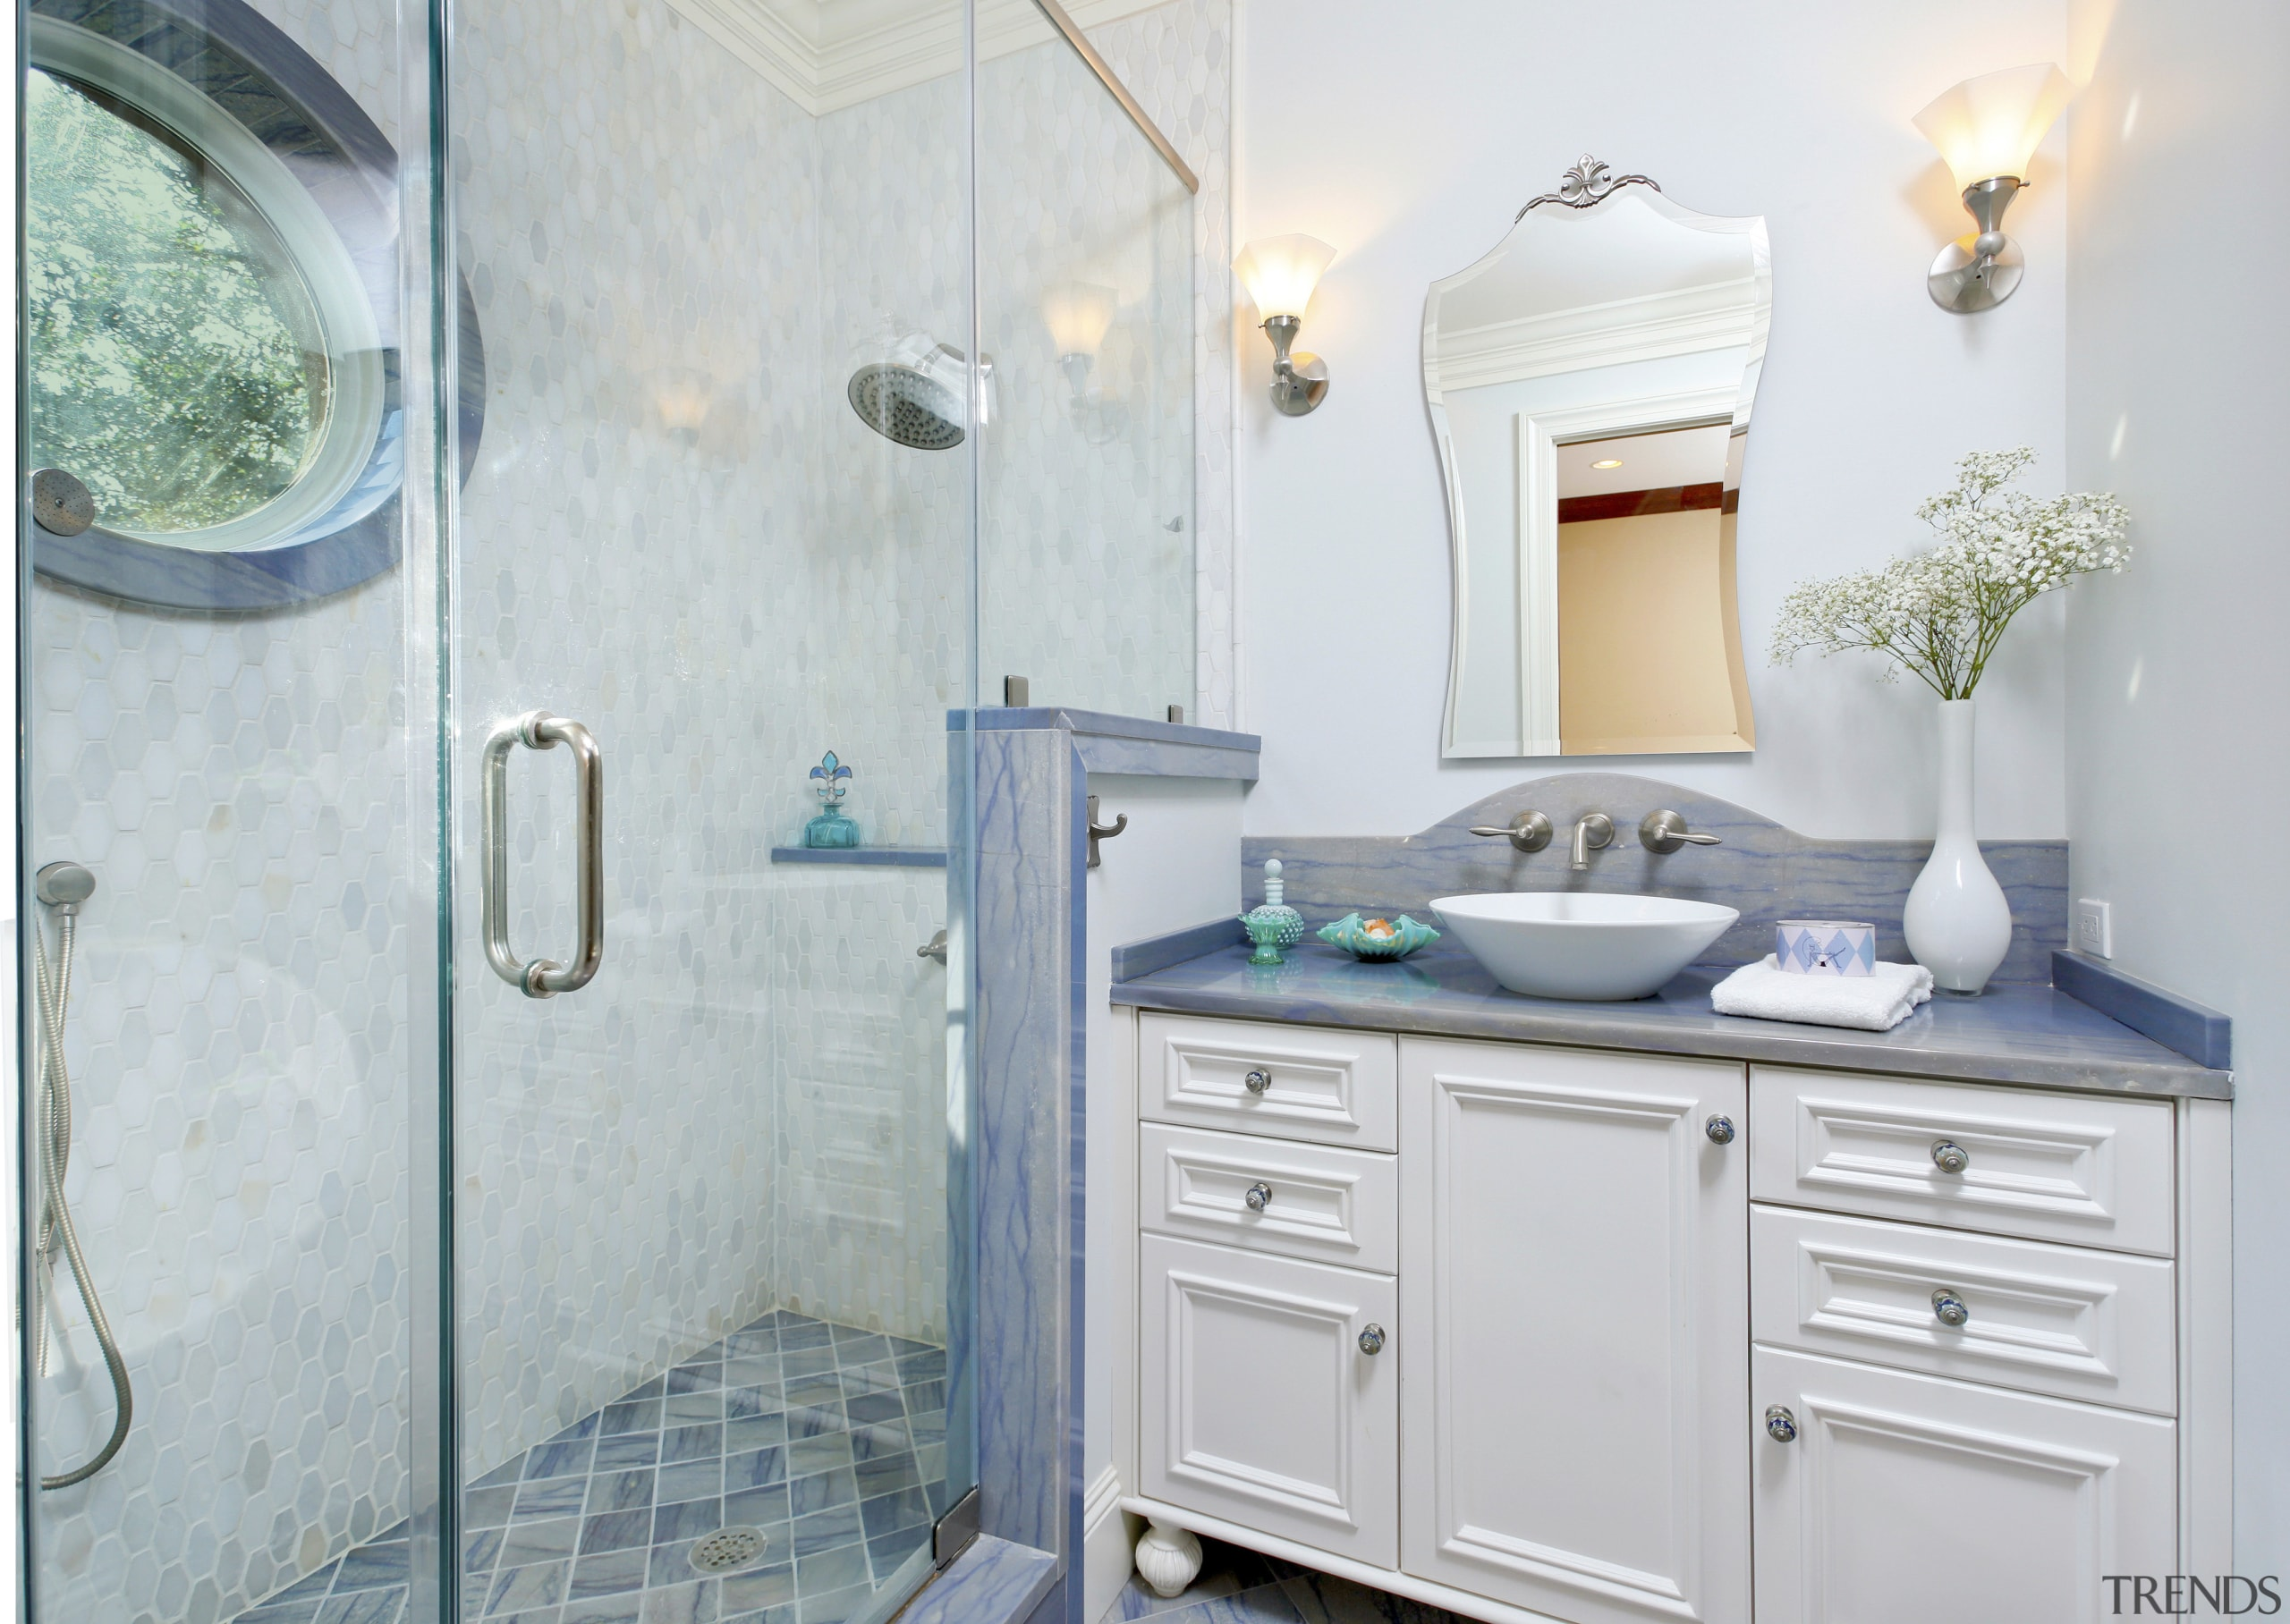 This bathroom by Cheryl Kees Clendenon manipulates color, bathroom, bathroom accessory, bathroom cabinet, countertop, home, interior design, room, sink, gray